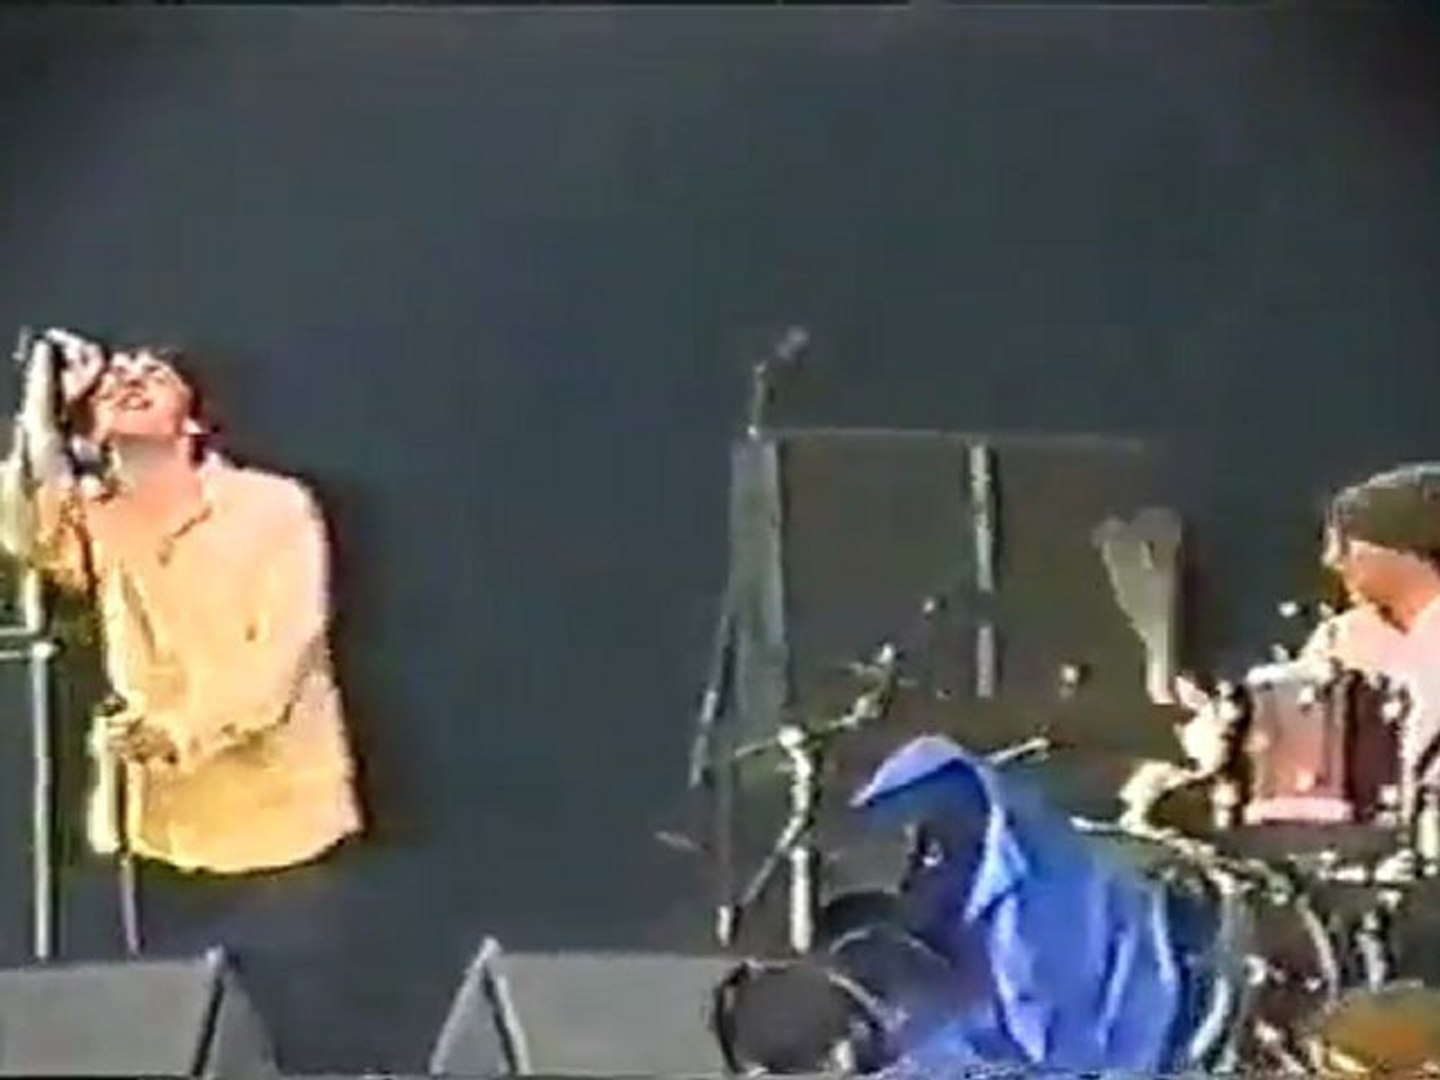 The Charlatans Just When Youre Thinkin Things Over - Phoenix Festival England 16.07.1995